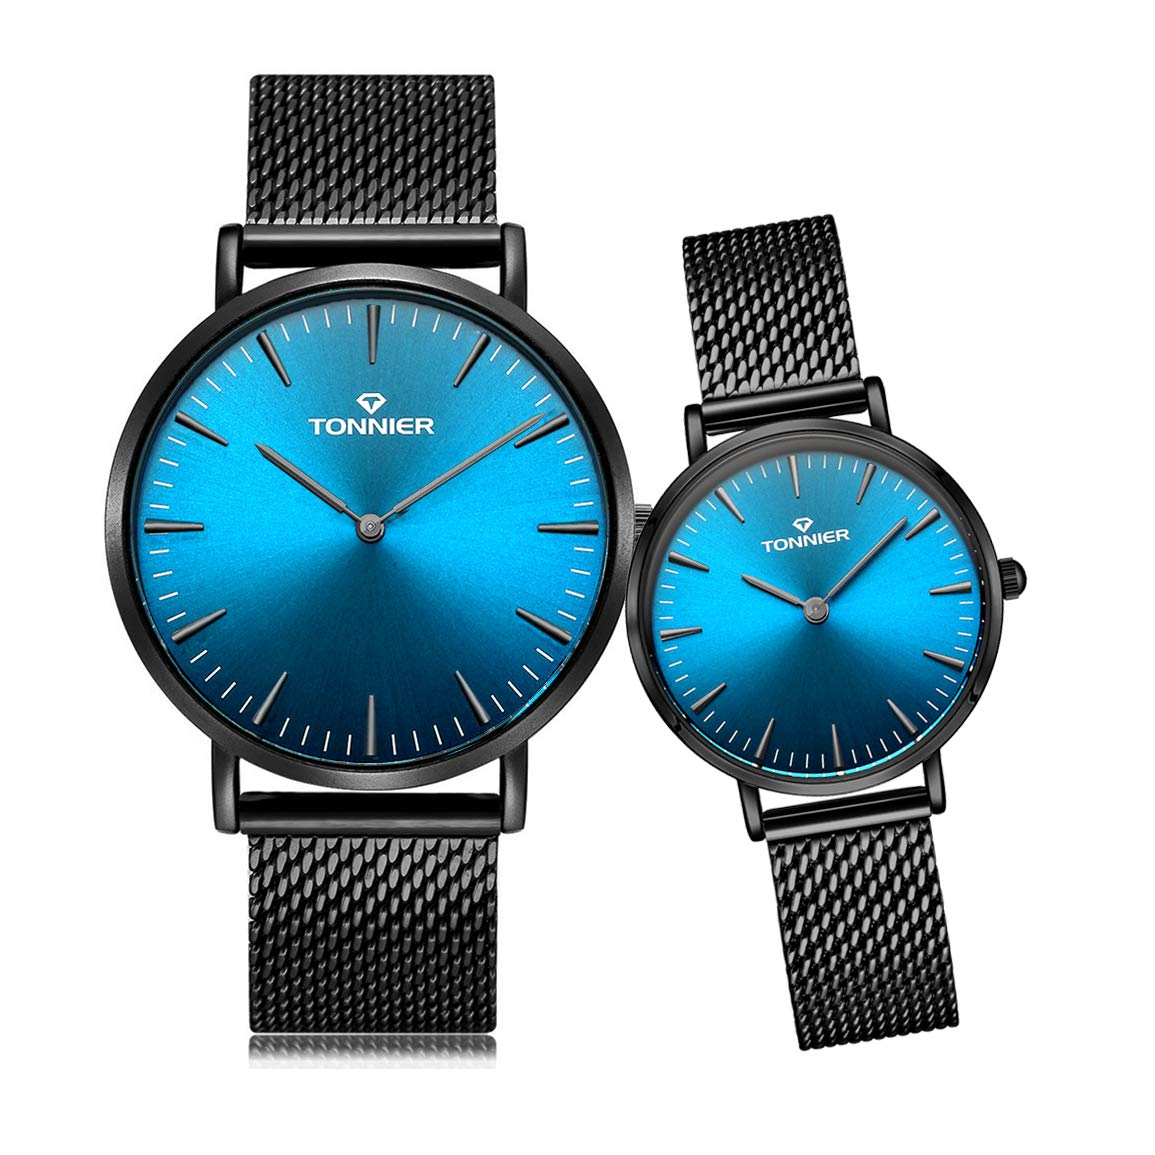 eb7d46241143 Amazon.com  Tonnier Stainless Steel Slim Black Mesh Band Couple Watches His  and Hers Watches for Lovers Set of 2 Deep Blue Face  Tonnier  Watches